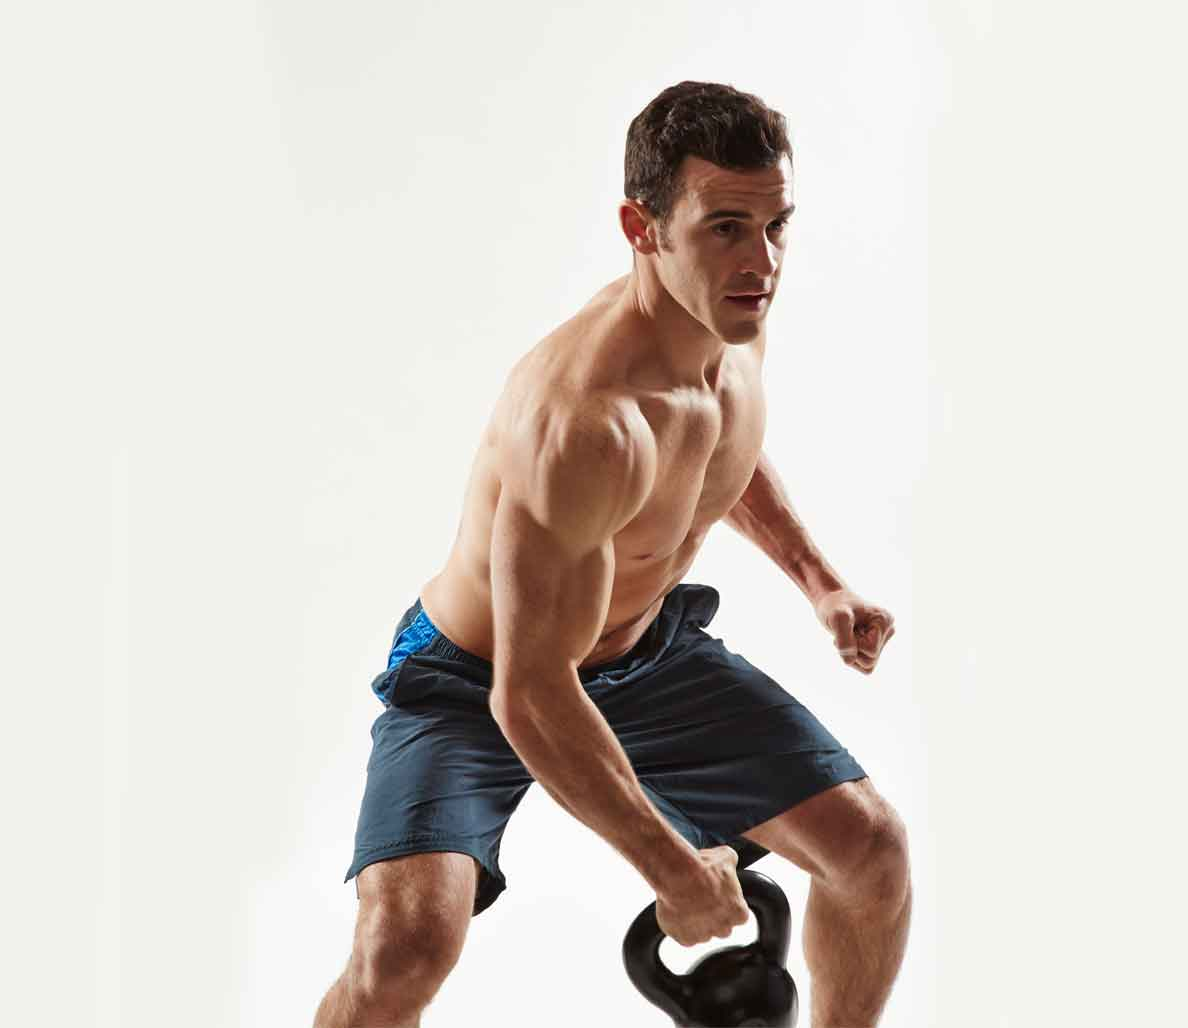 Full Body Fat-Burning Kettlebell Workout - Daily Workout